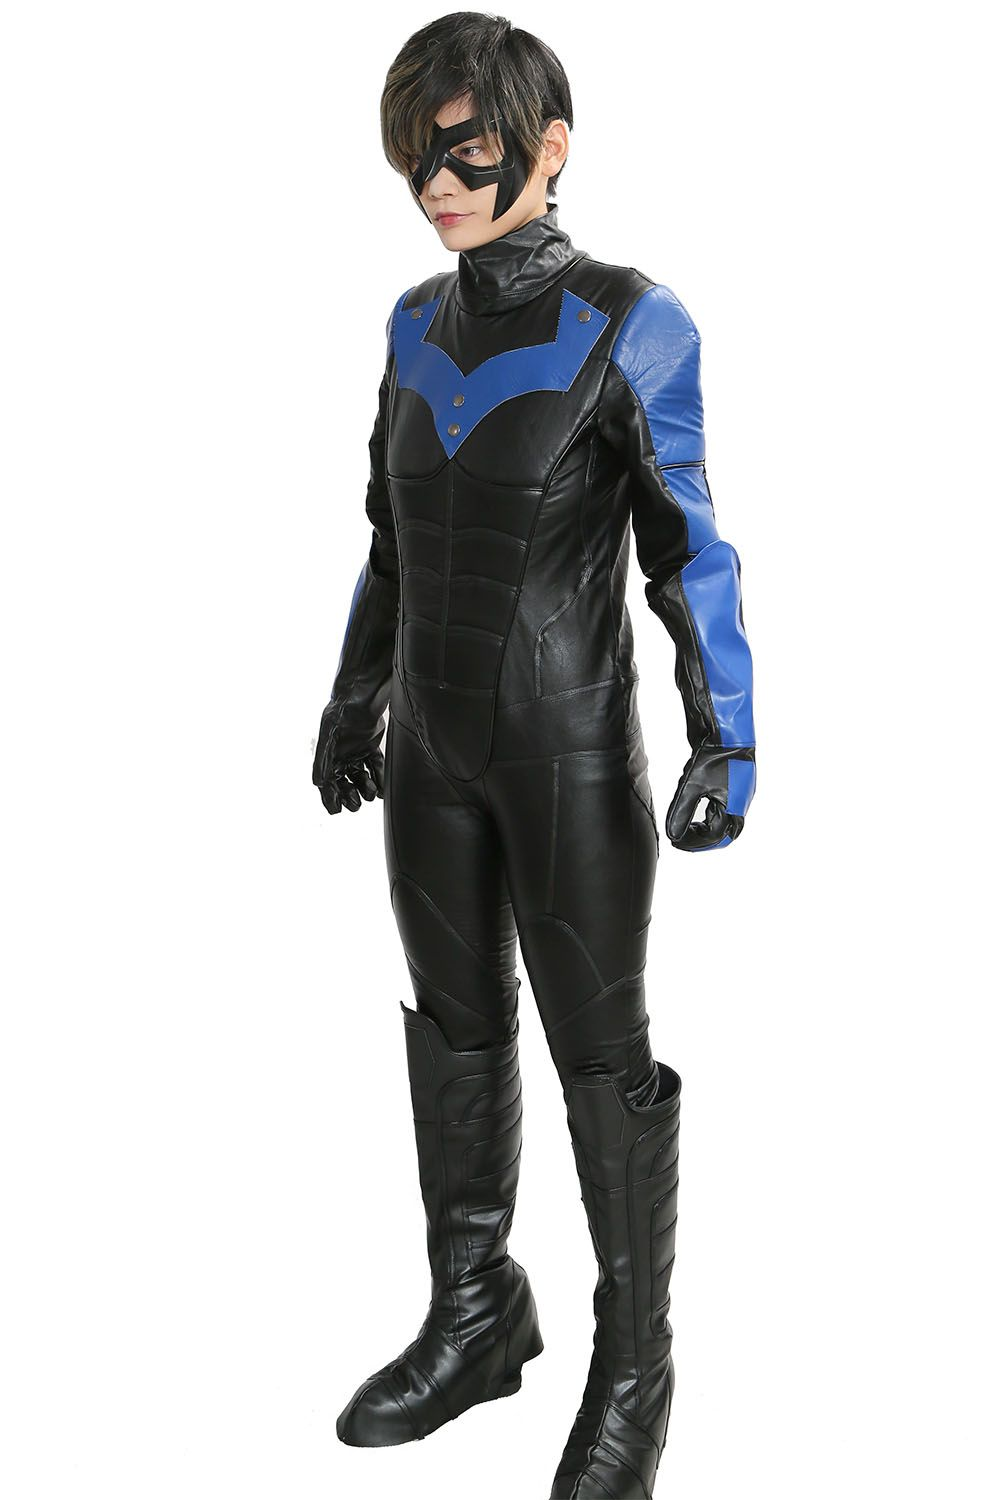 50 Super Cool Character Costume Ideas | Nightwing and Costumes